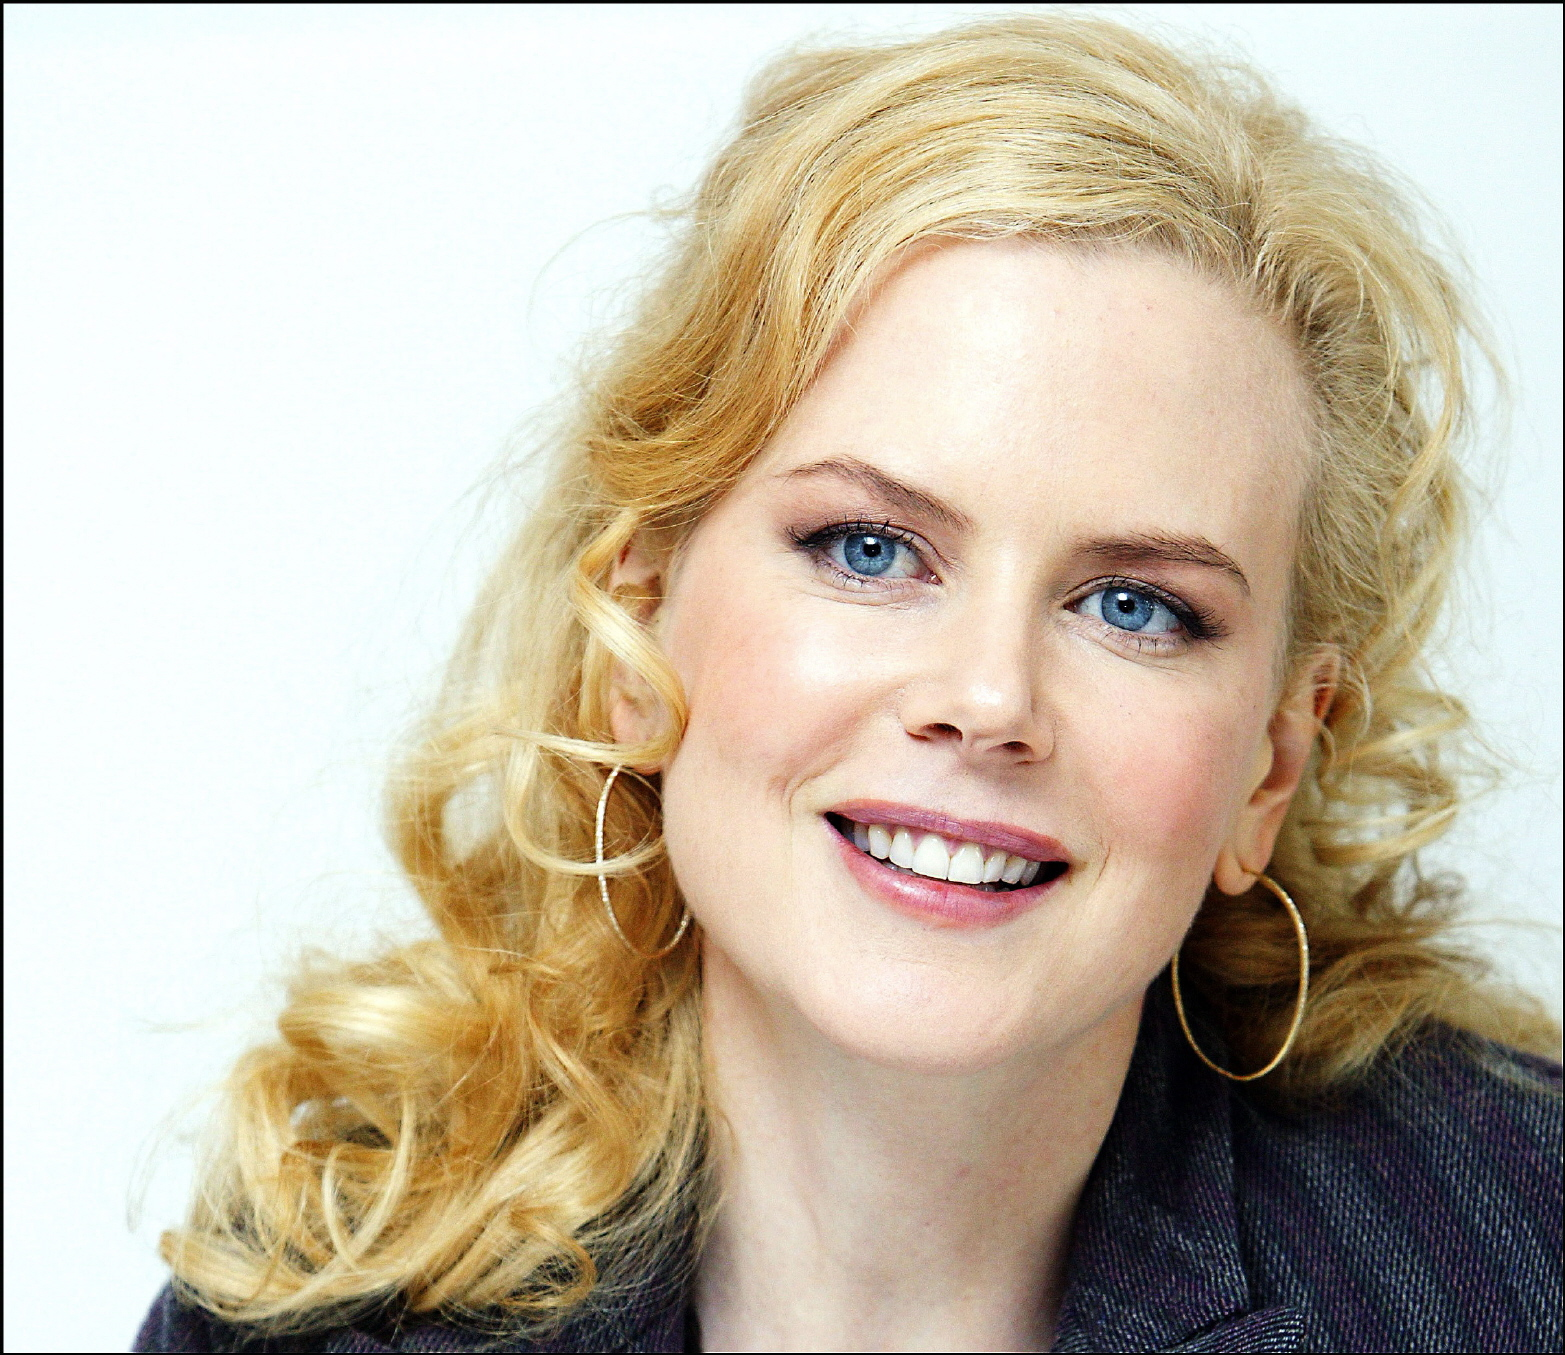 Nicole Kidman Photo 209 Of 2309 Pics, Wallpaper - Photo 59412 - Theplace2-6257